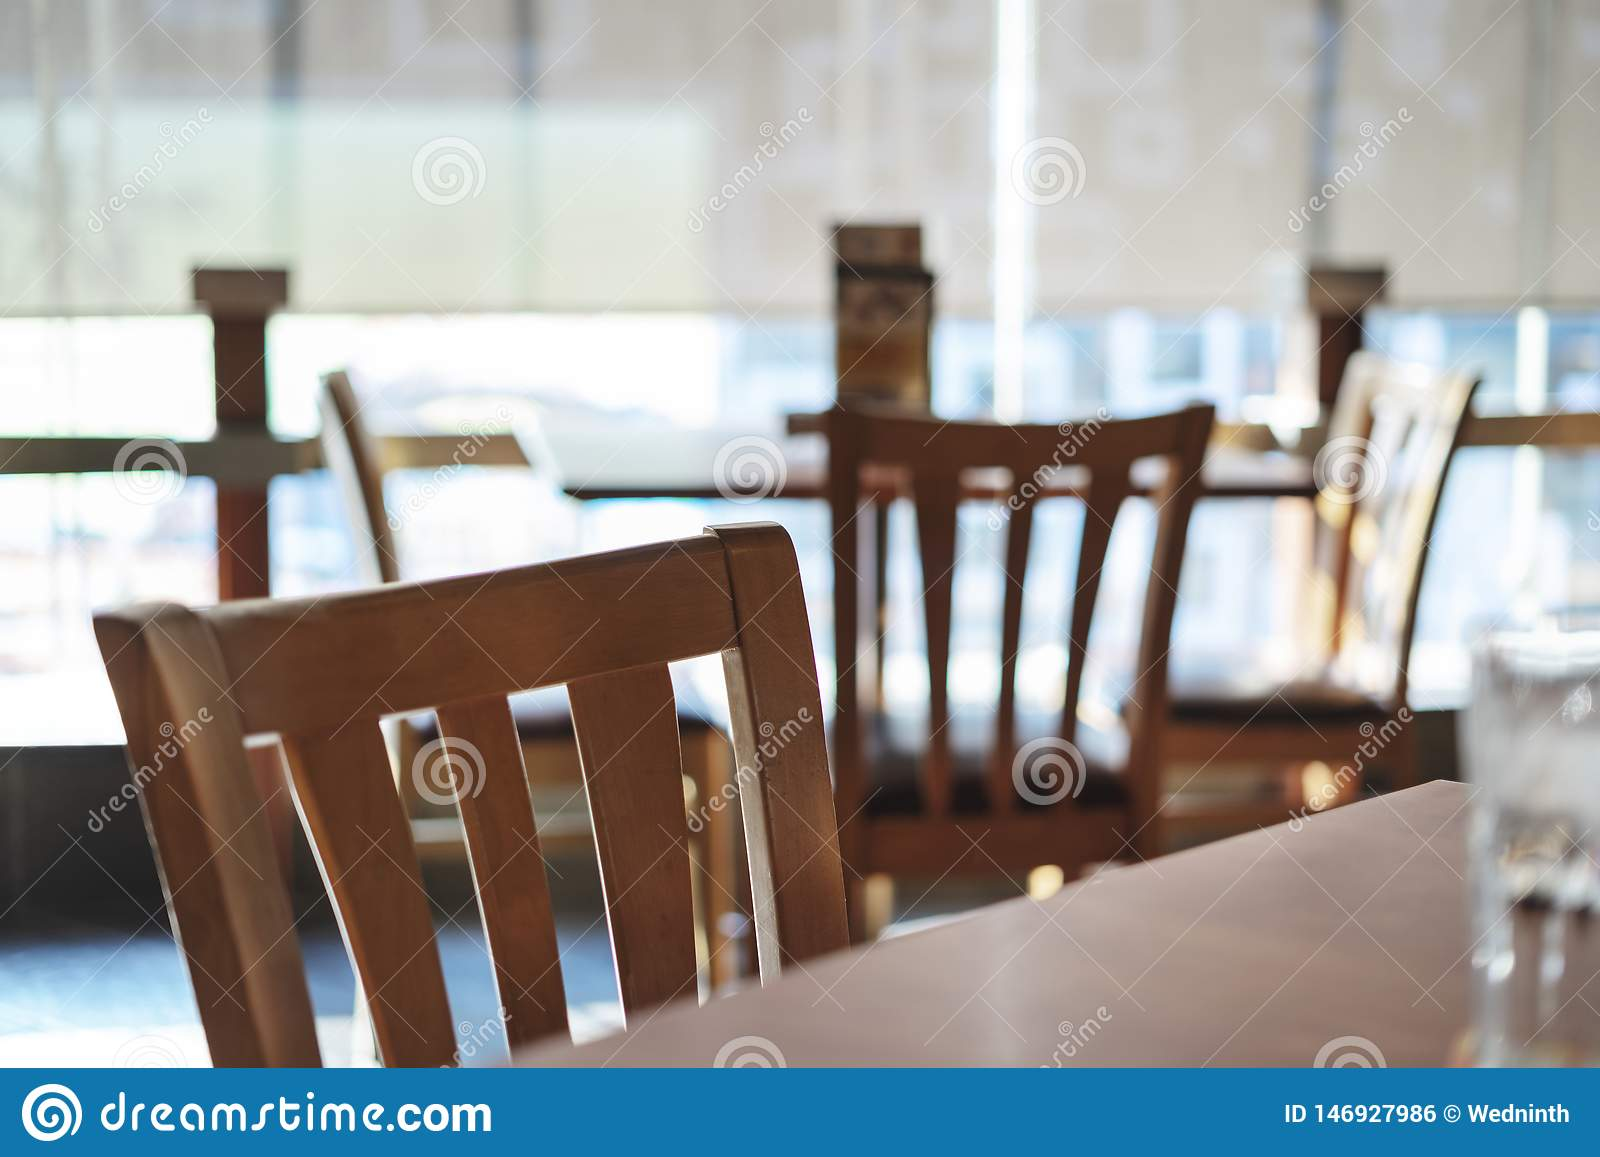 Table and empty chair Interior of a modern restaurant or bar